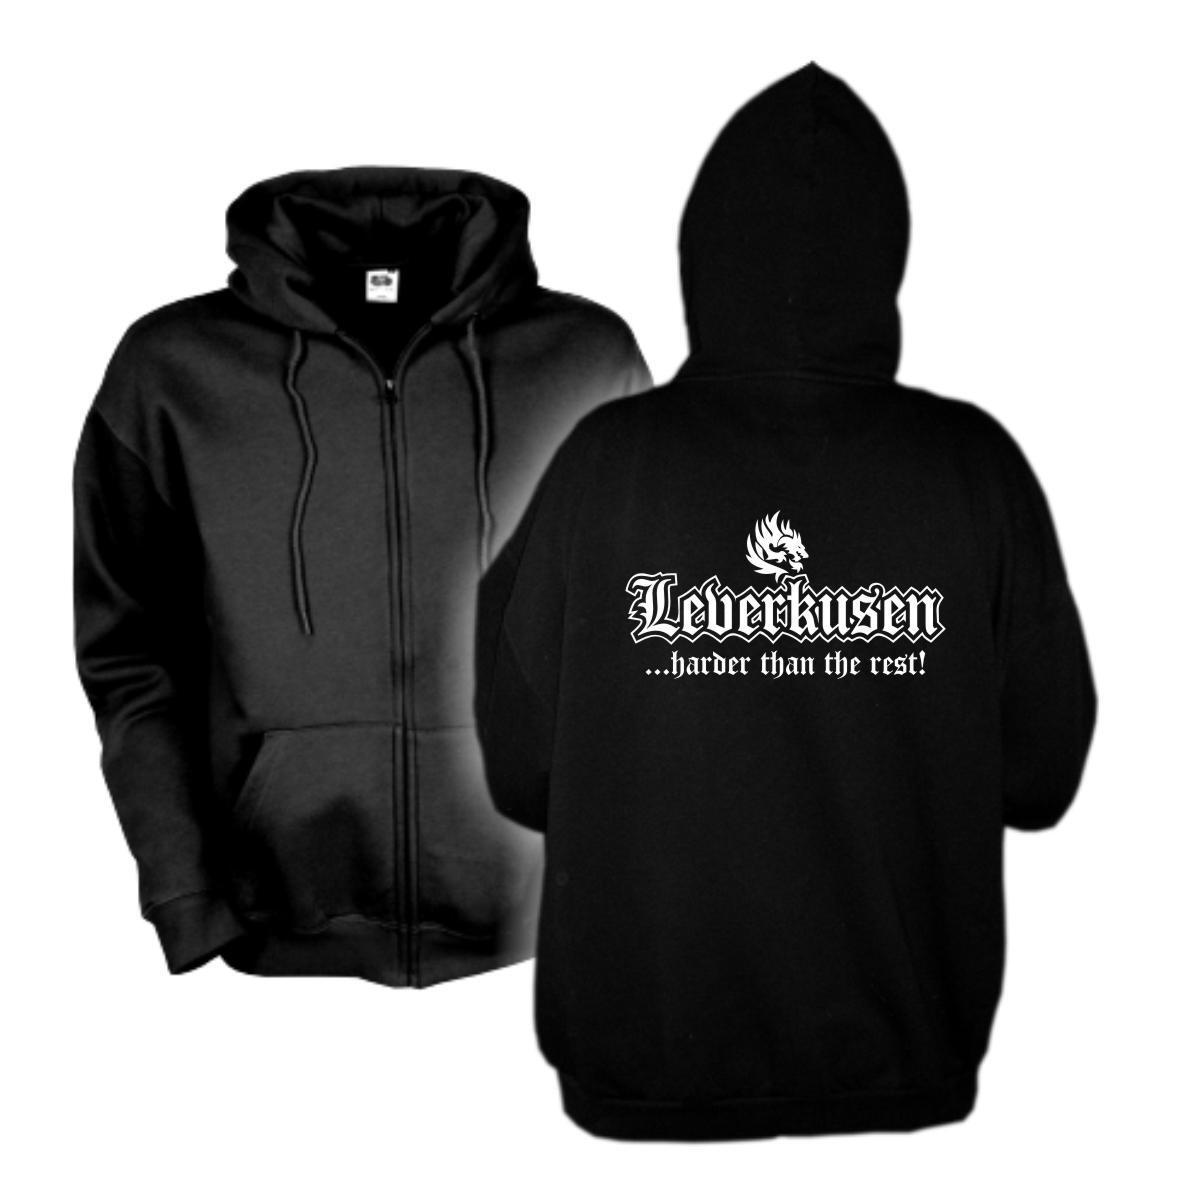 Kapuzenjacke Leverkusen harder than the rest Städte Hoodie (SFU03-03e)